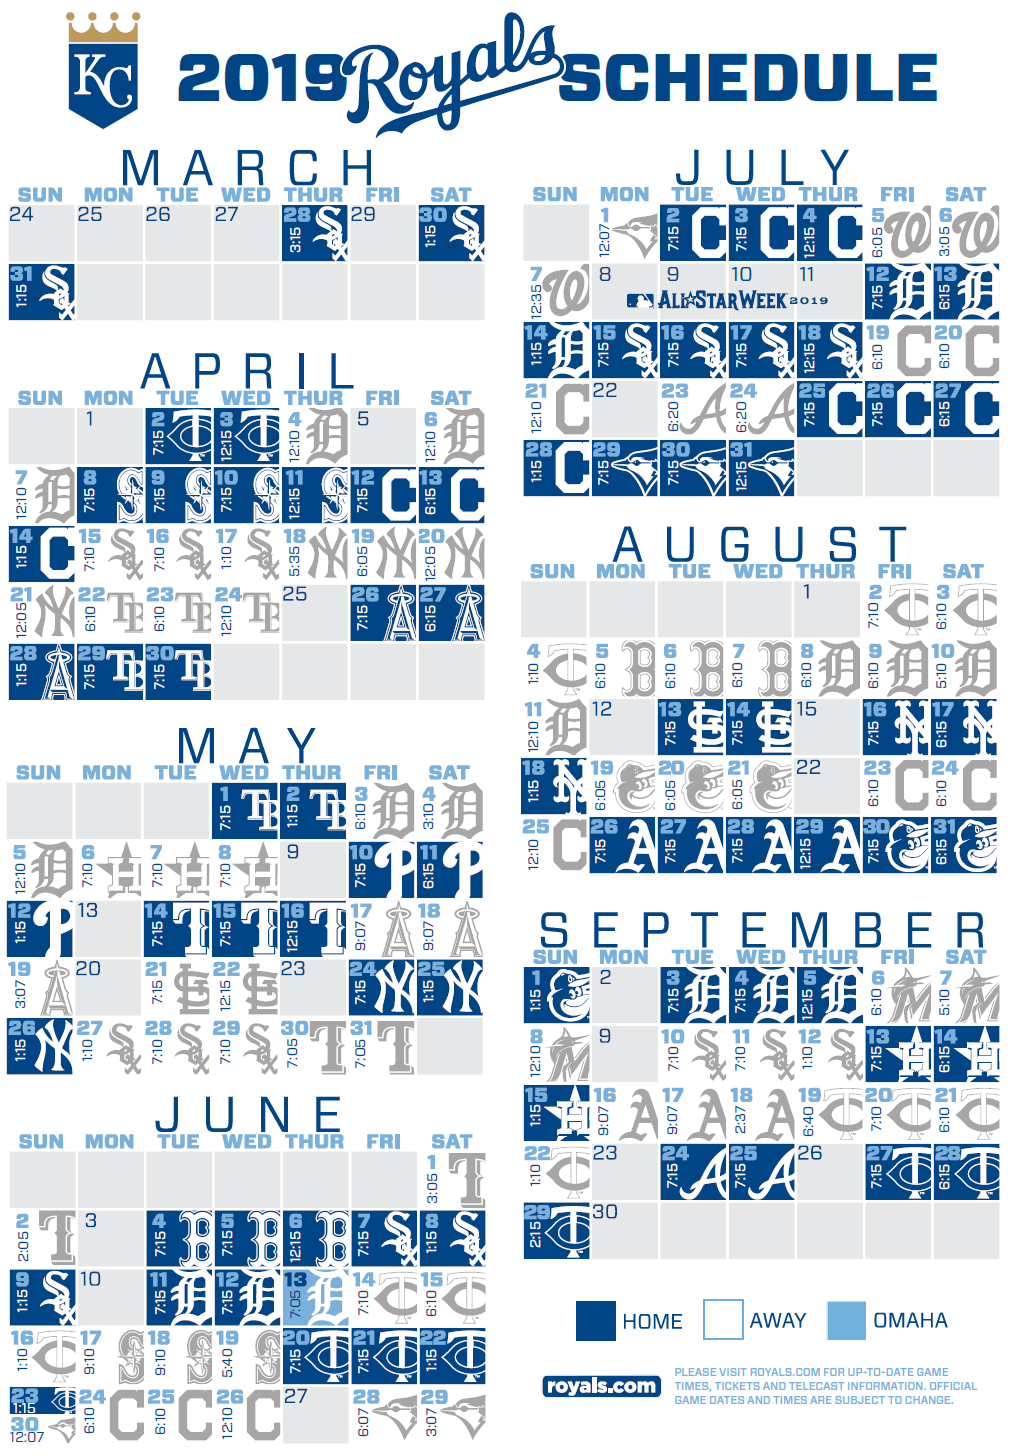 Astounding image with kc royals printable schedule